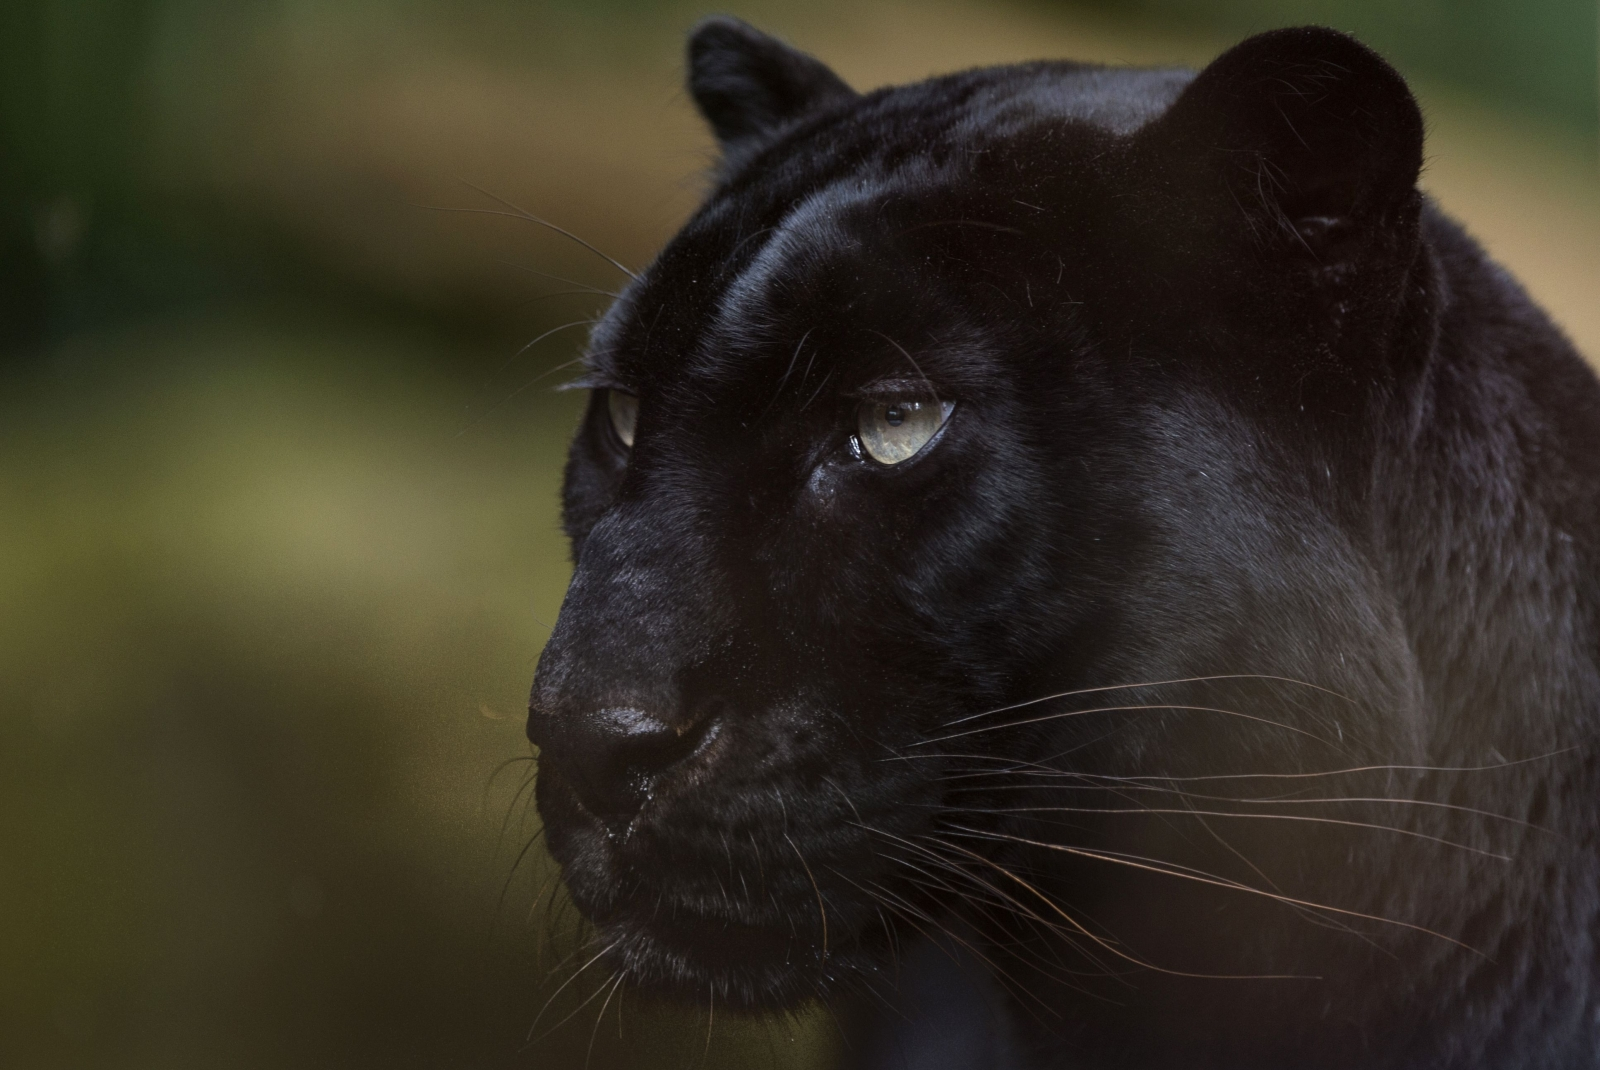 Ukrainian meets bloody end as black panther mauls him in